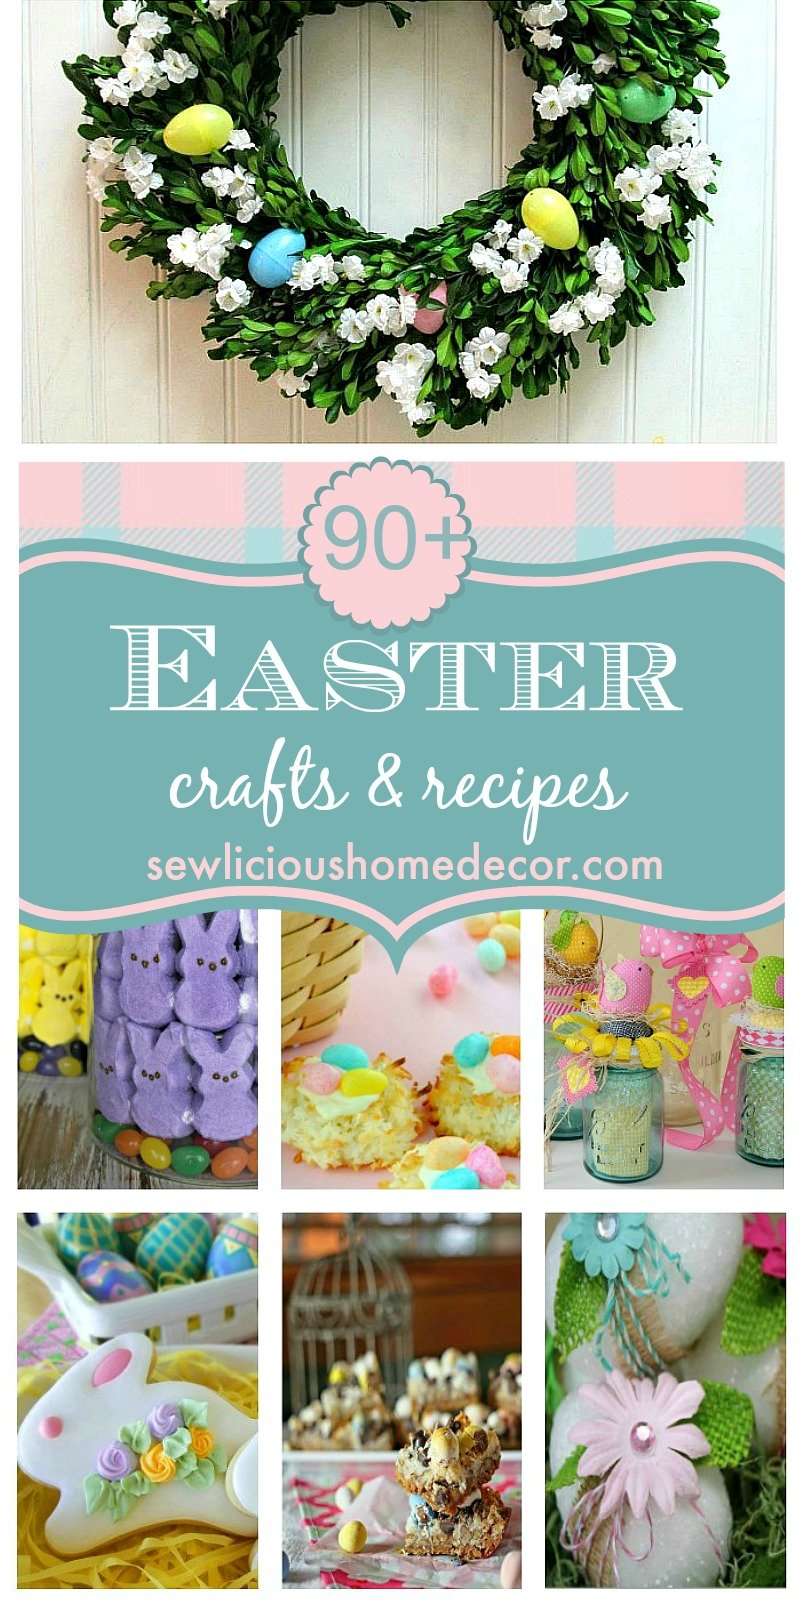 https://i2.wp.com/sewlicioushomedecor.com/wp-content/uploads/2014/04/Easter-Crafts-and-Recipe-Round-up-at-sewlicioushomedecor.com_.jpg?fit=800%2C1600